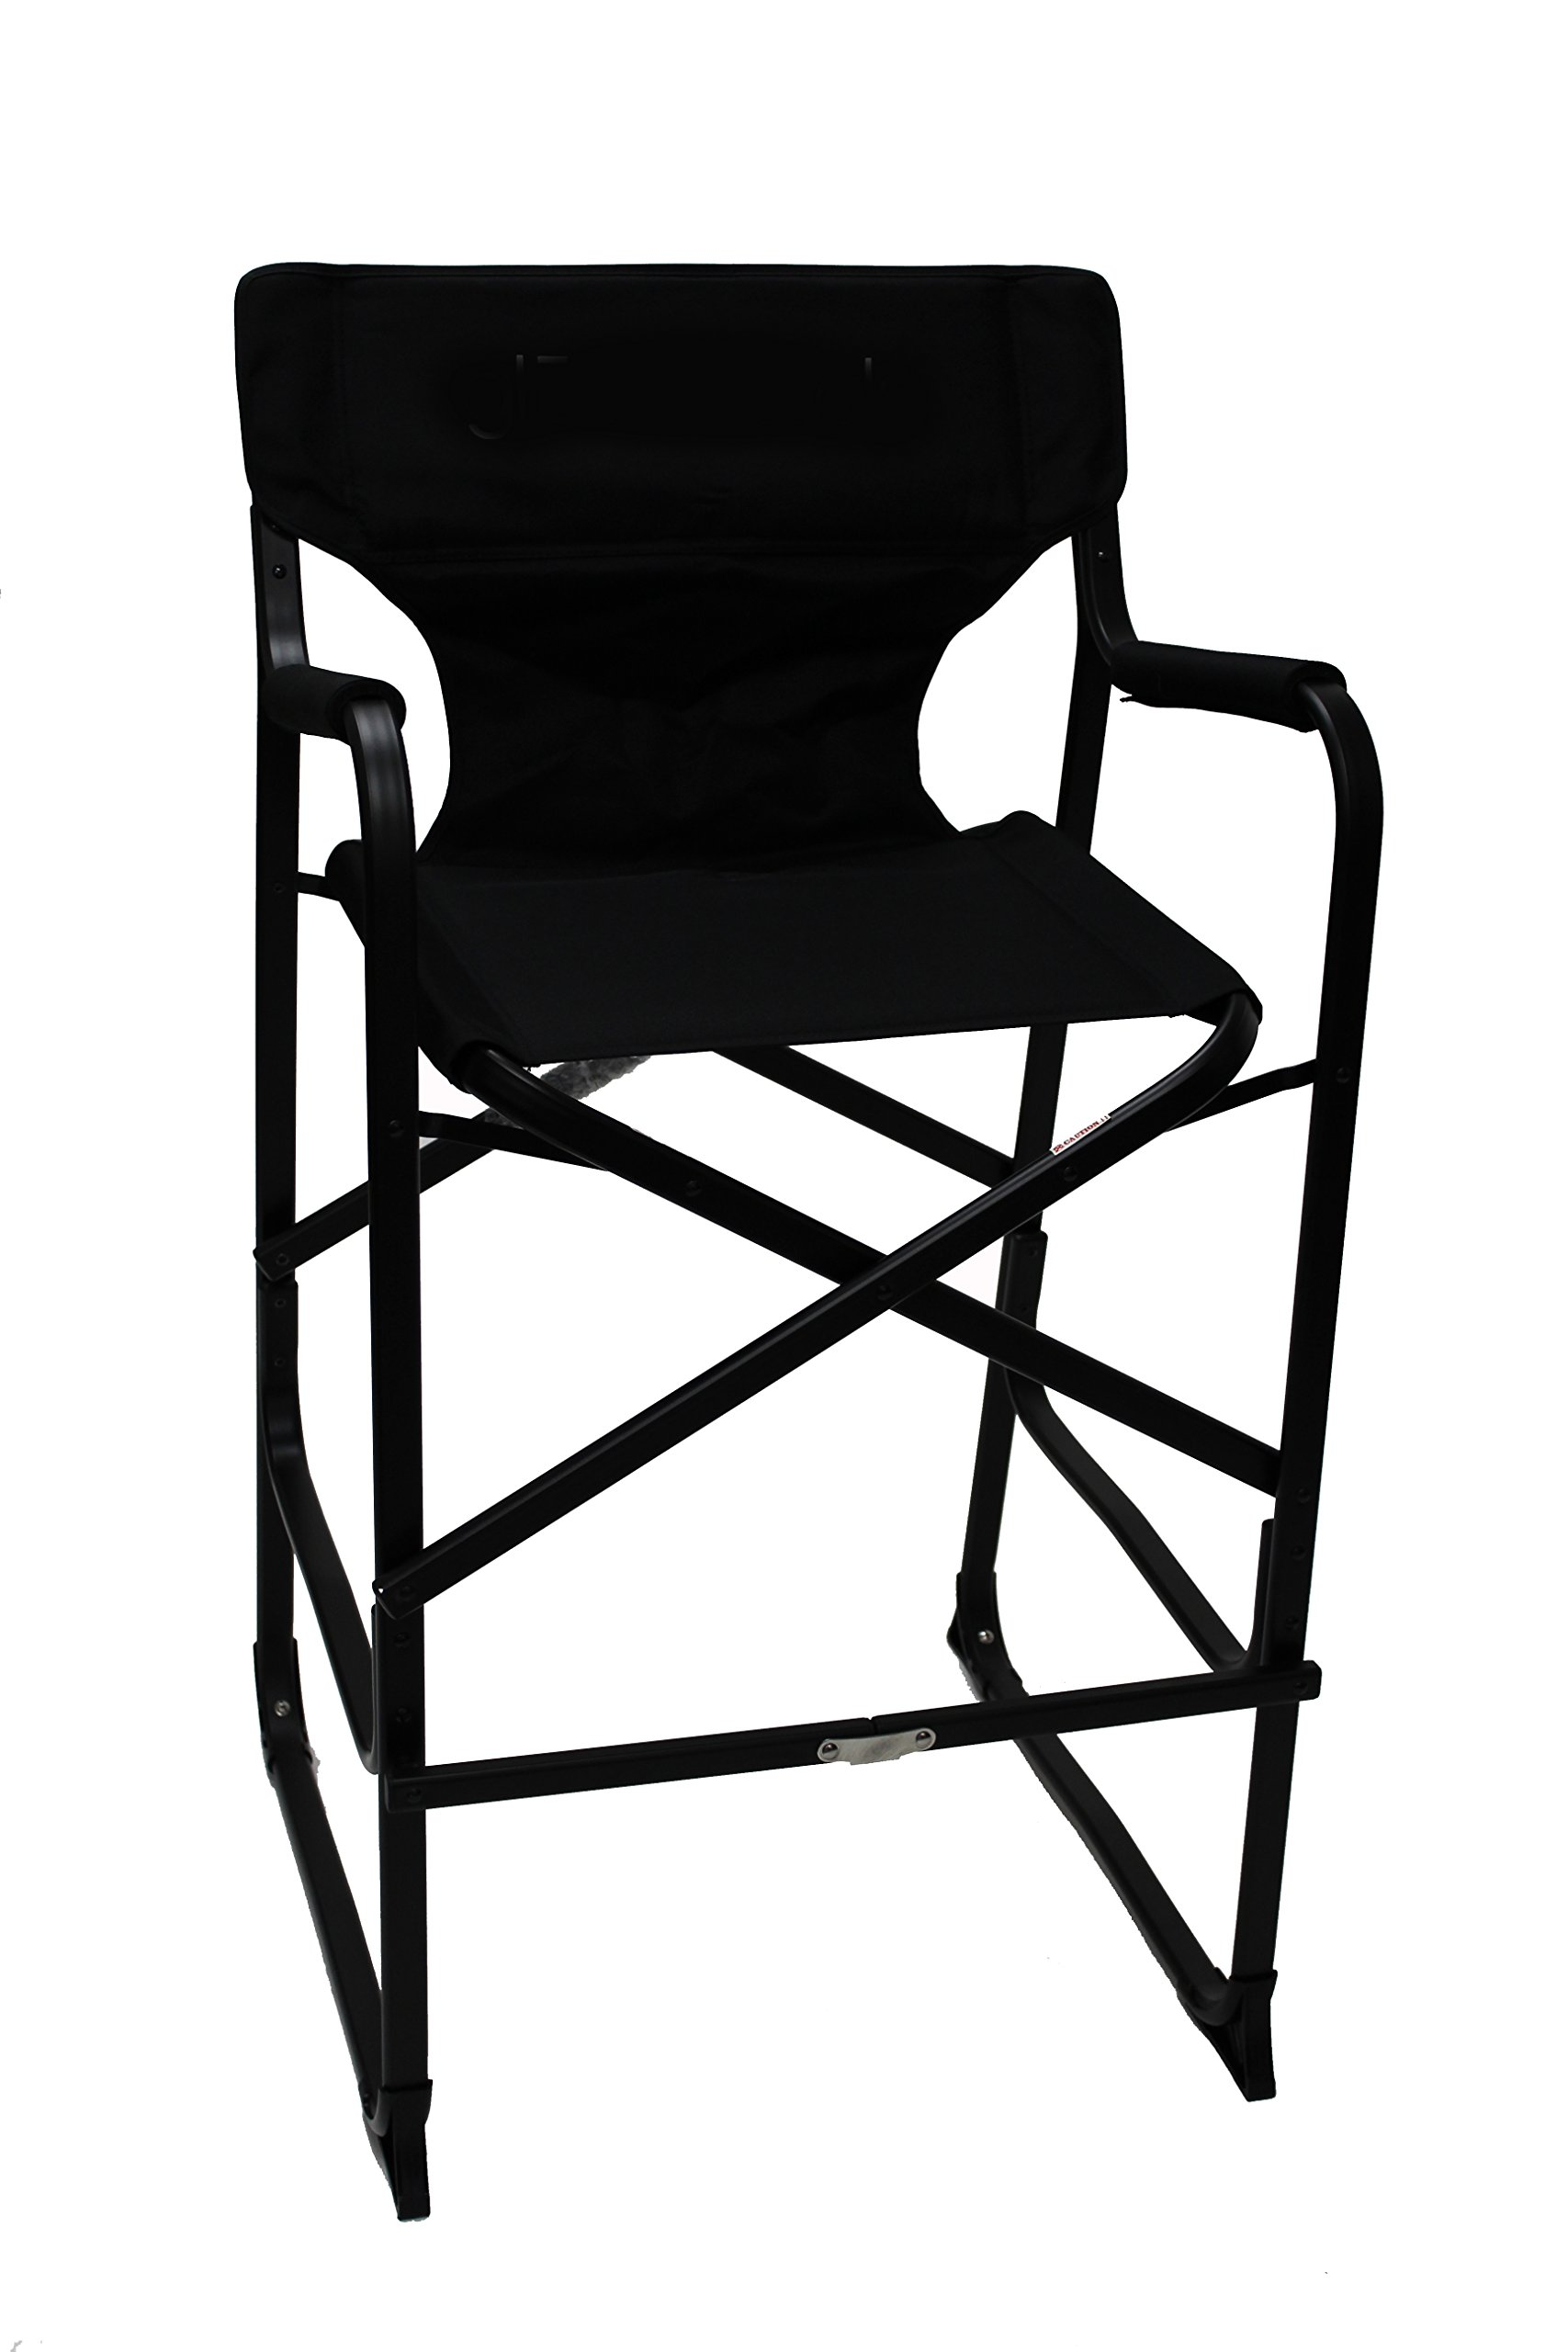 World Outdoor Products Lightweight PROFESSIONAL EDITION Tall Directors Chair